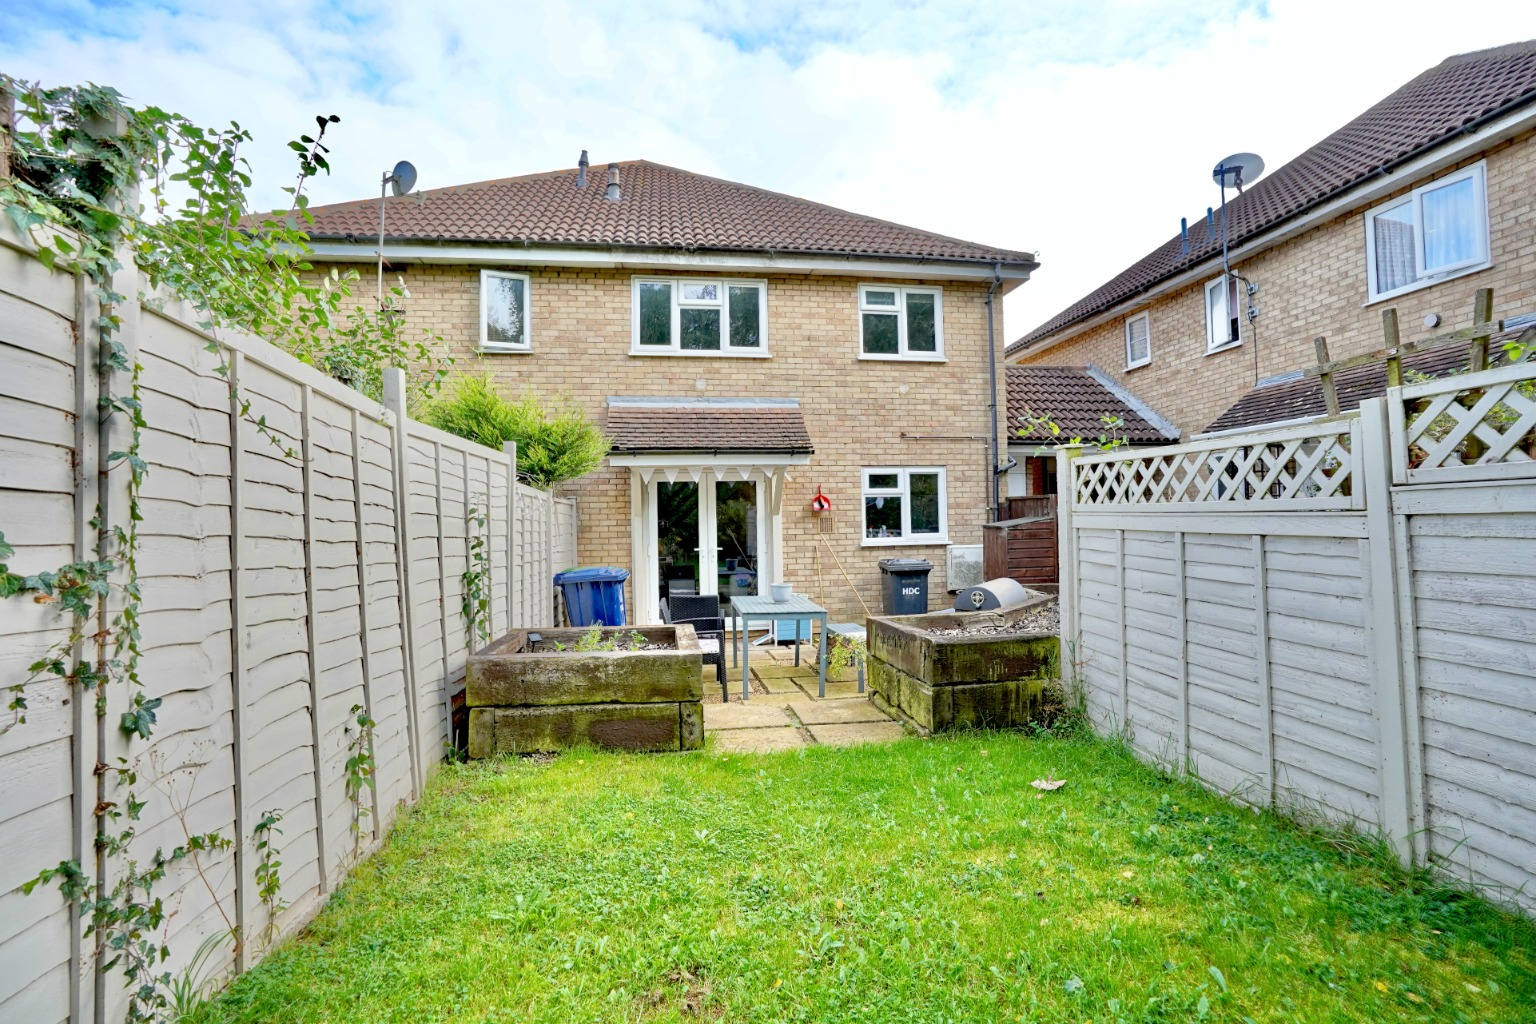 2 bed terraced house for sale in Meadowsweet, St. Neots 0